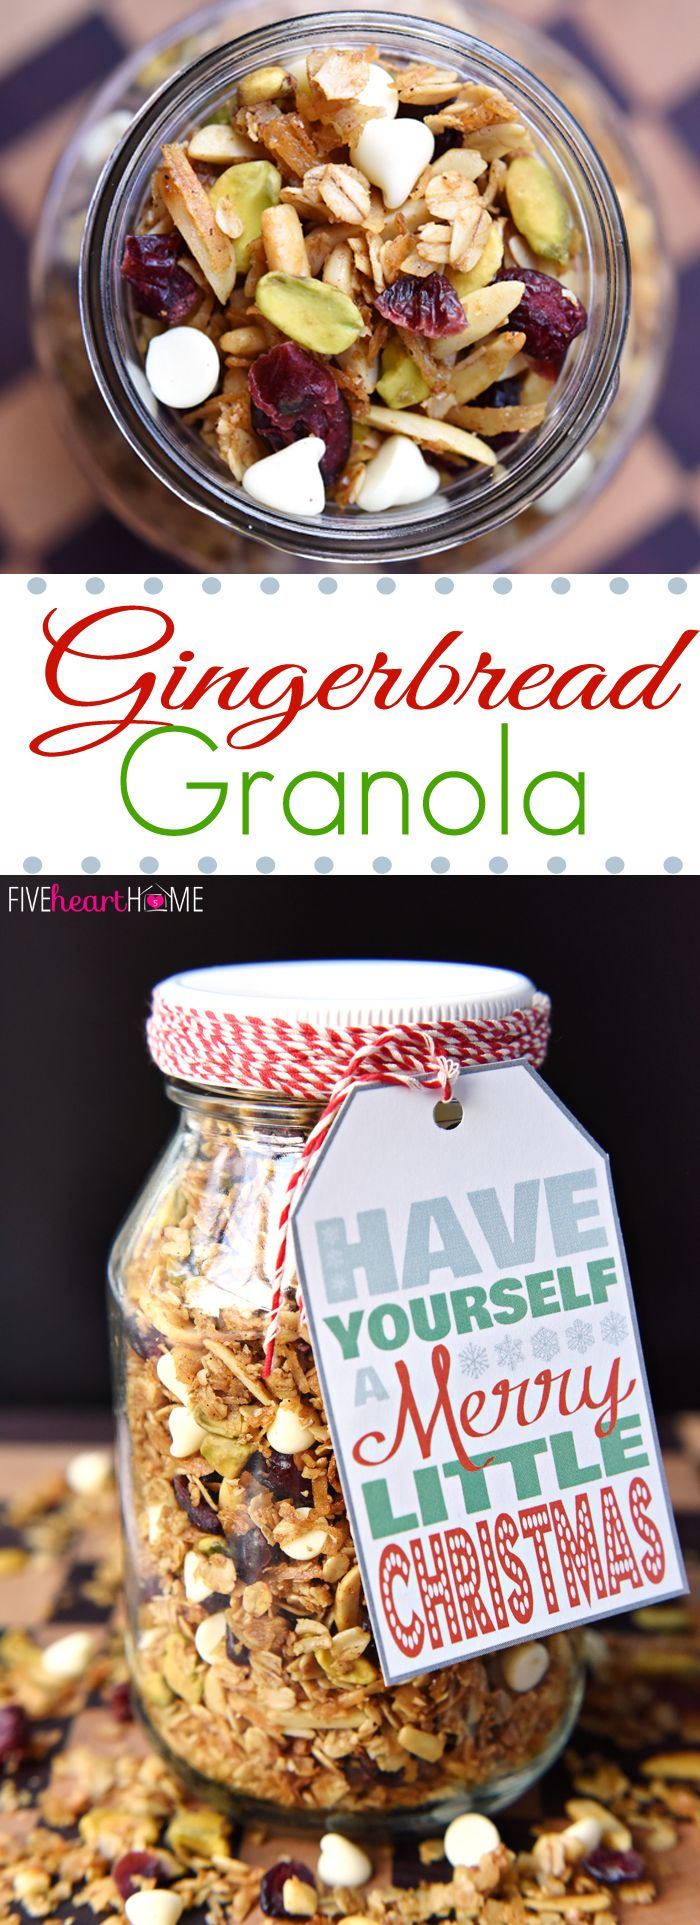 Gingerbread Granola Recipe Homemade food gifts, Food